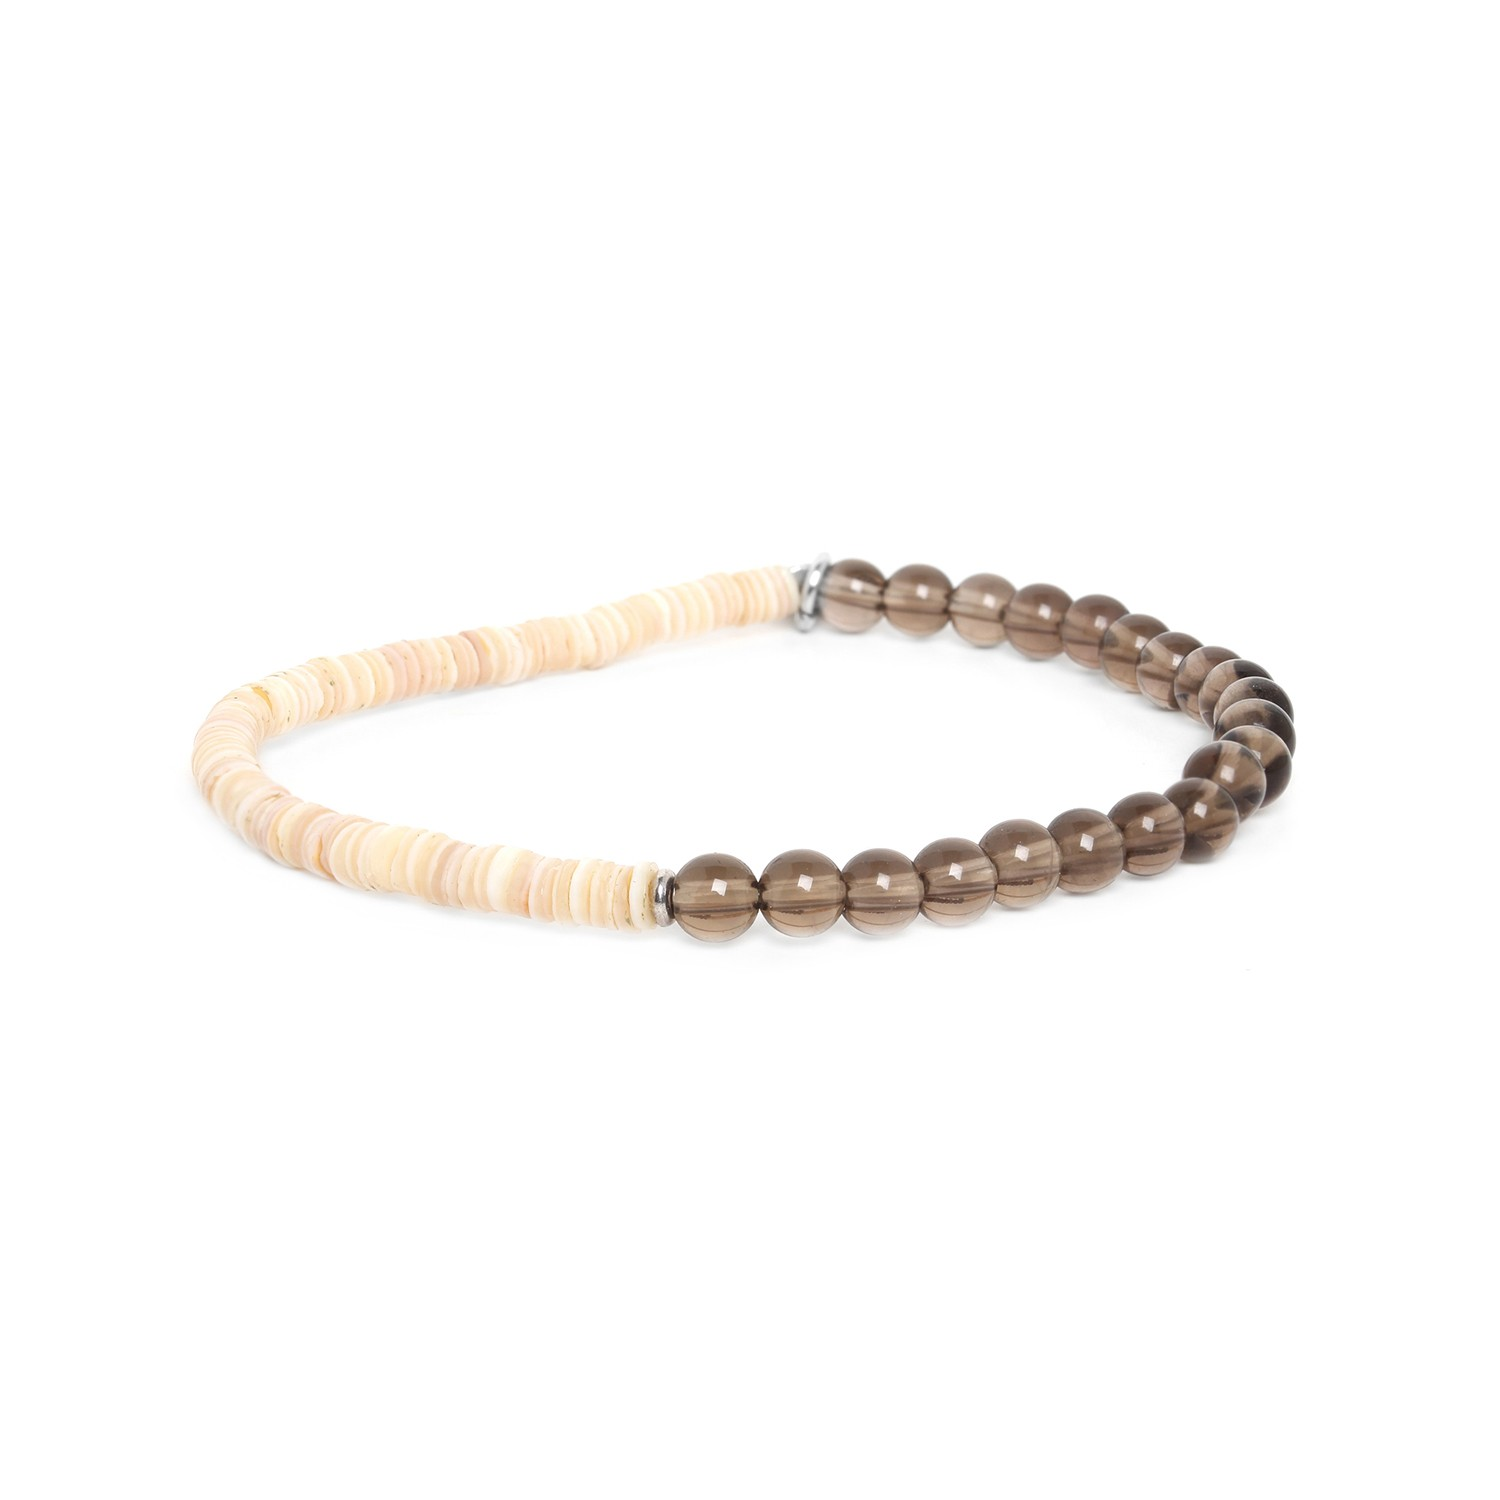 HEISHE stretch smoky quartz bracelet